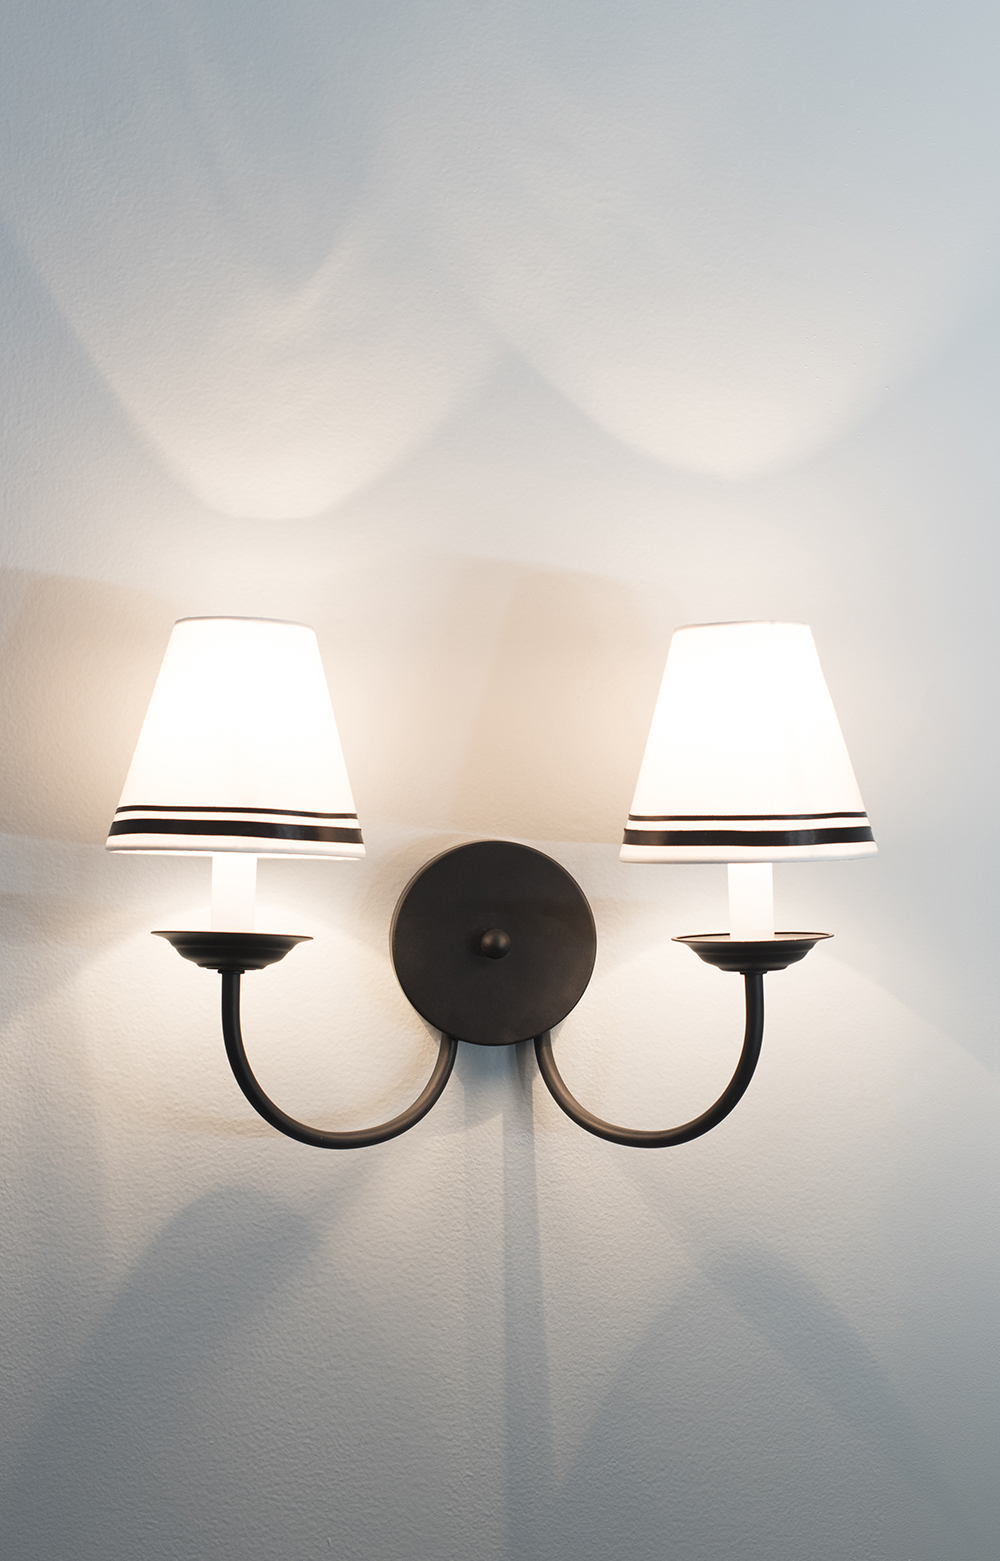 Double Sconce Easy Shade Upgrade - roomfortuesday.com